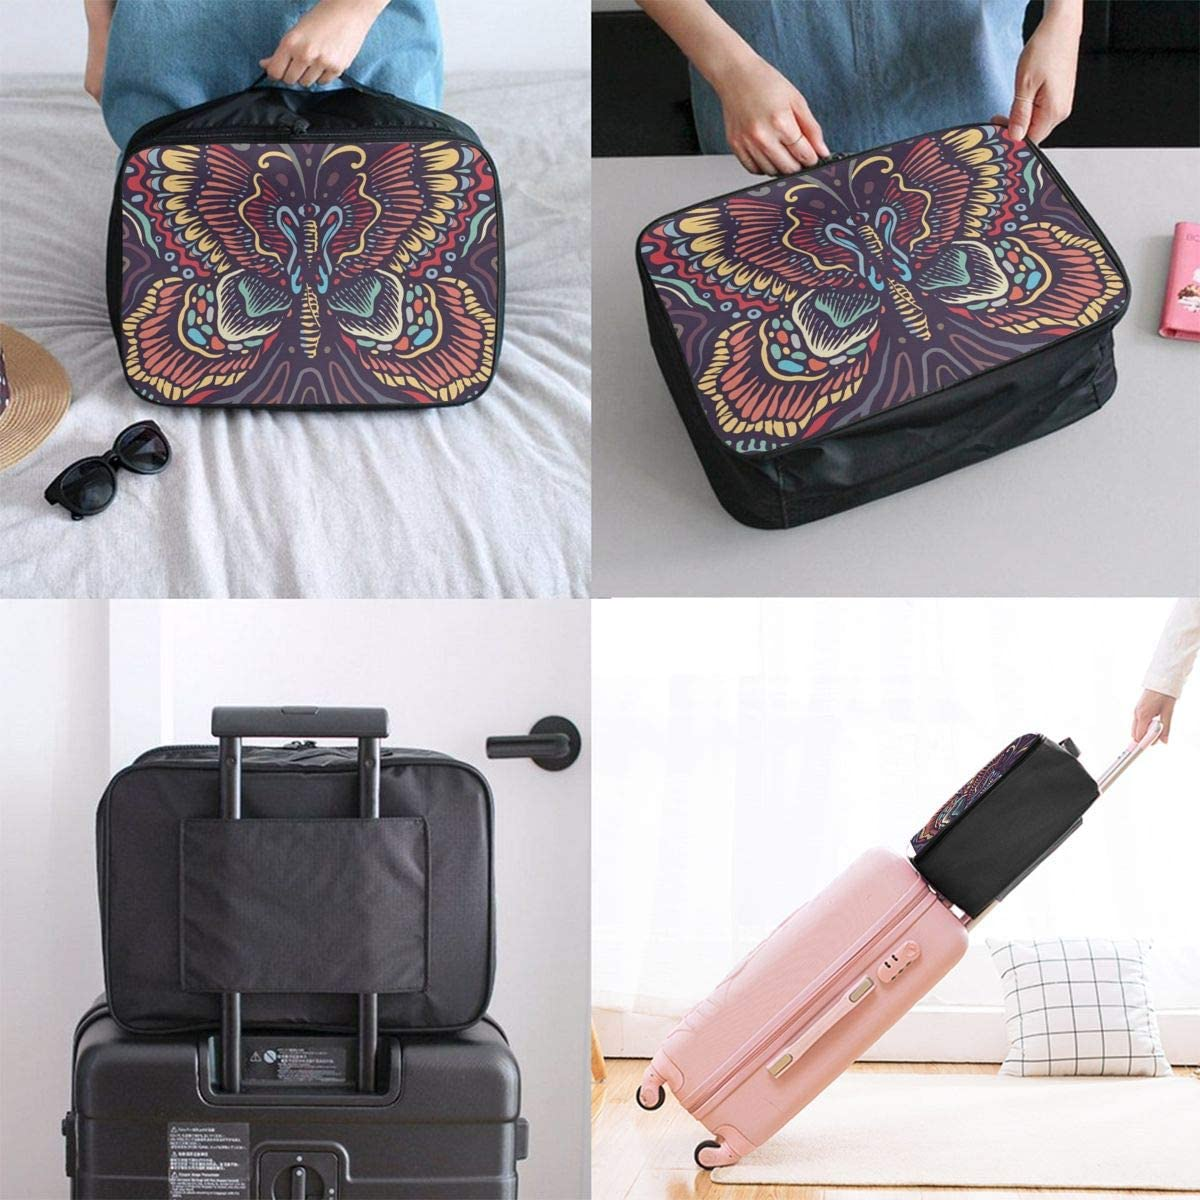 Eastern Mandala Butterfly Vintage Colors Lightweight LargeTravel Storage Luggage Trolley Bag Travel Duffel Bags Carry-On Tote